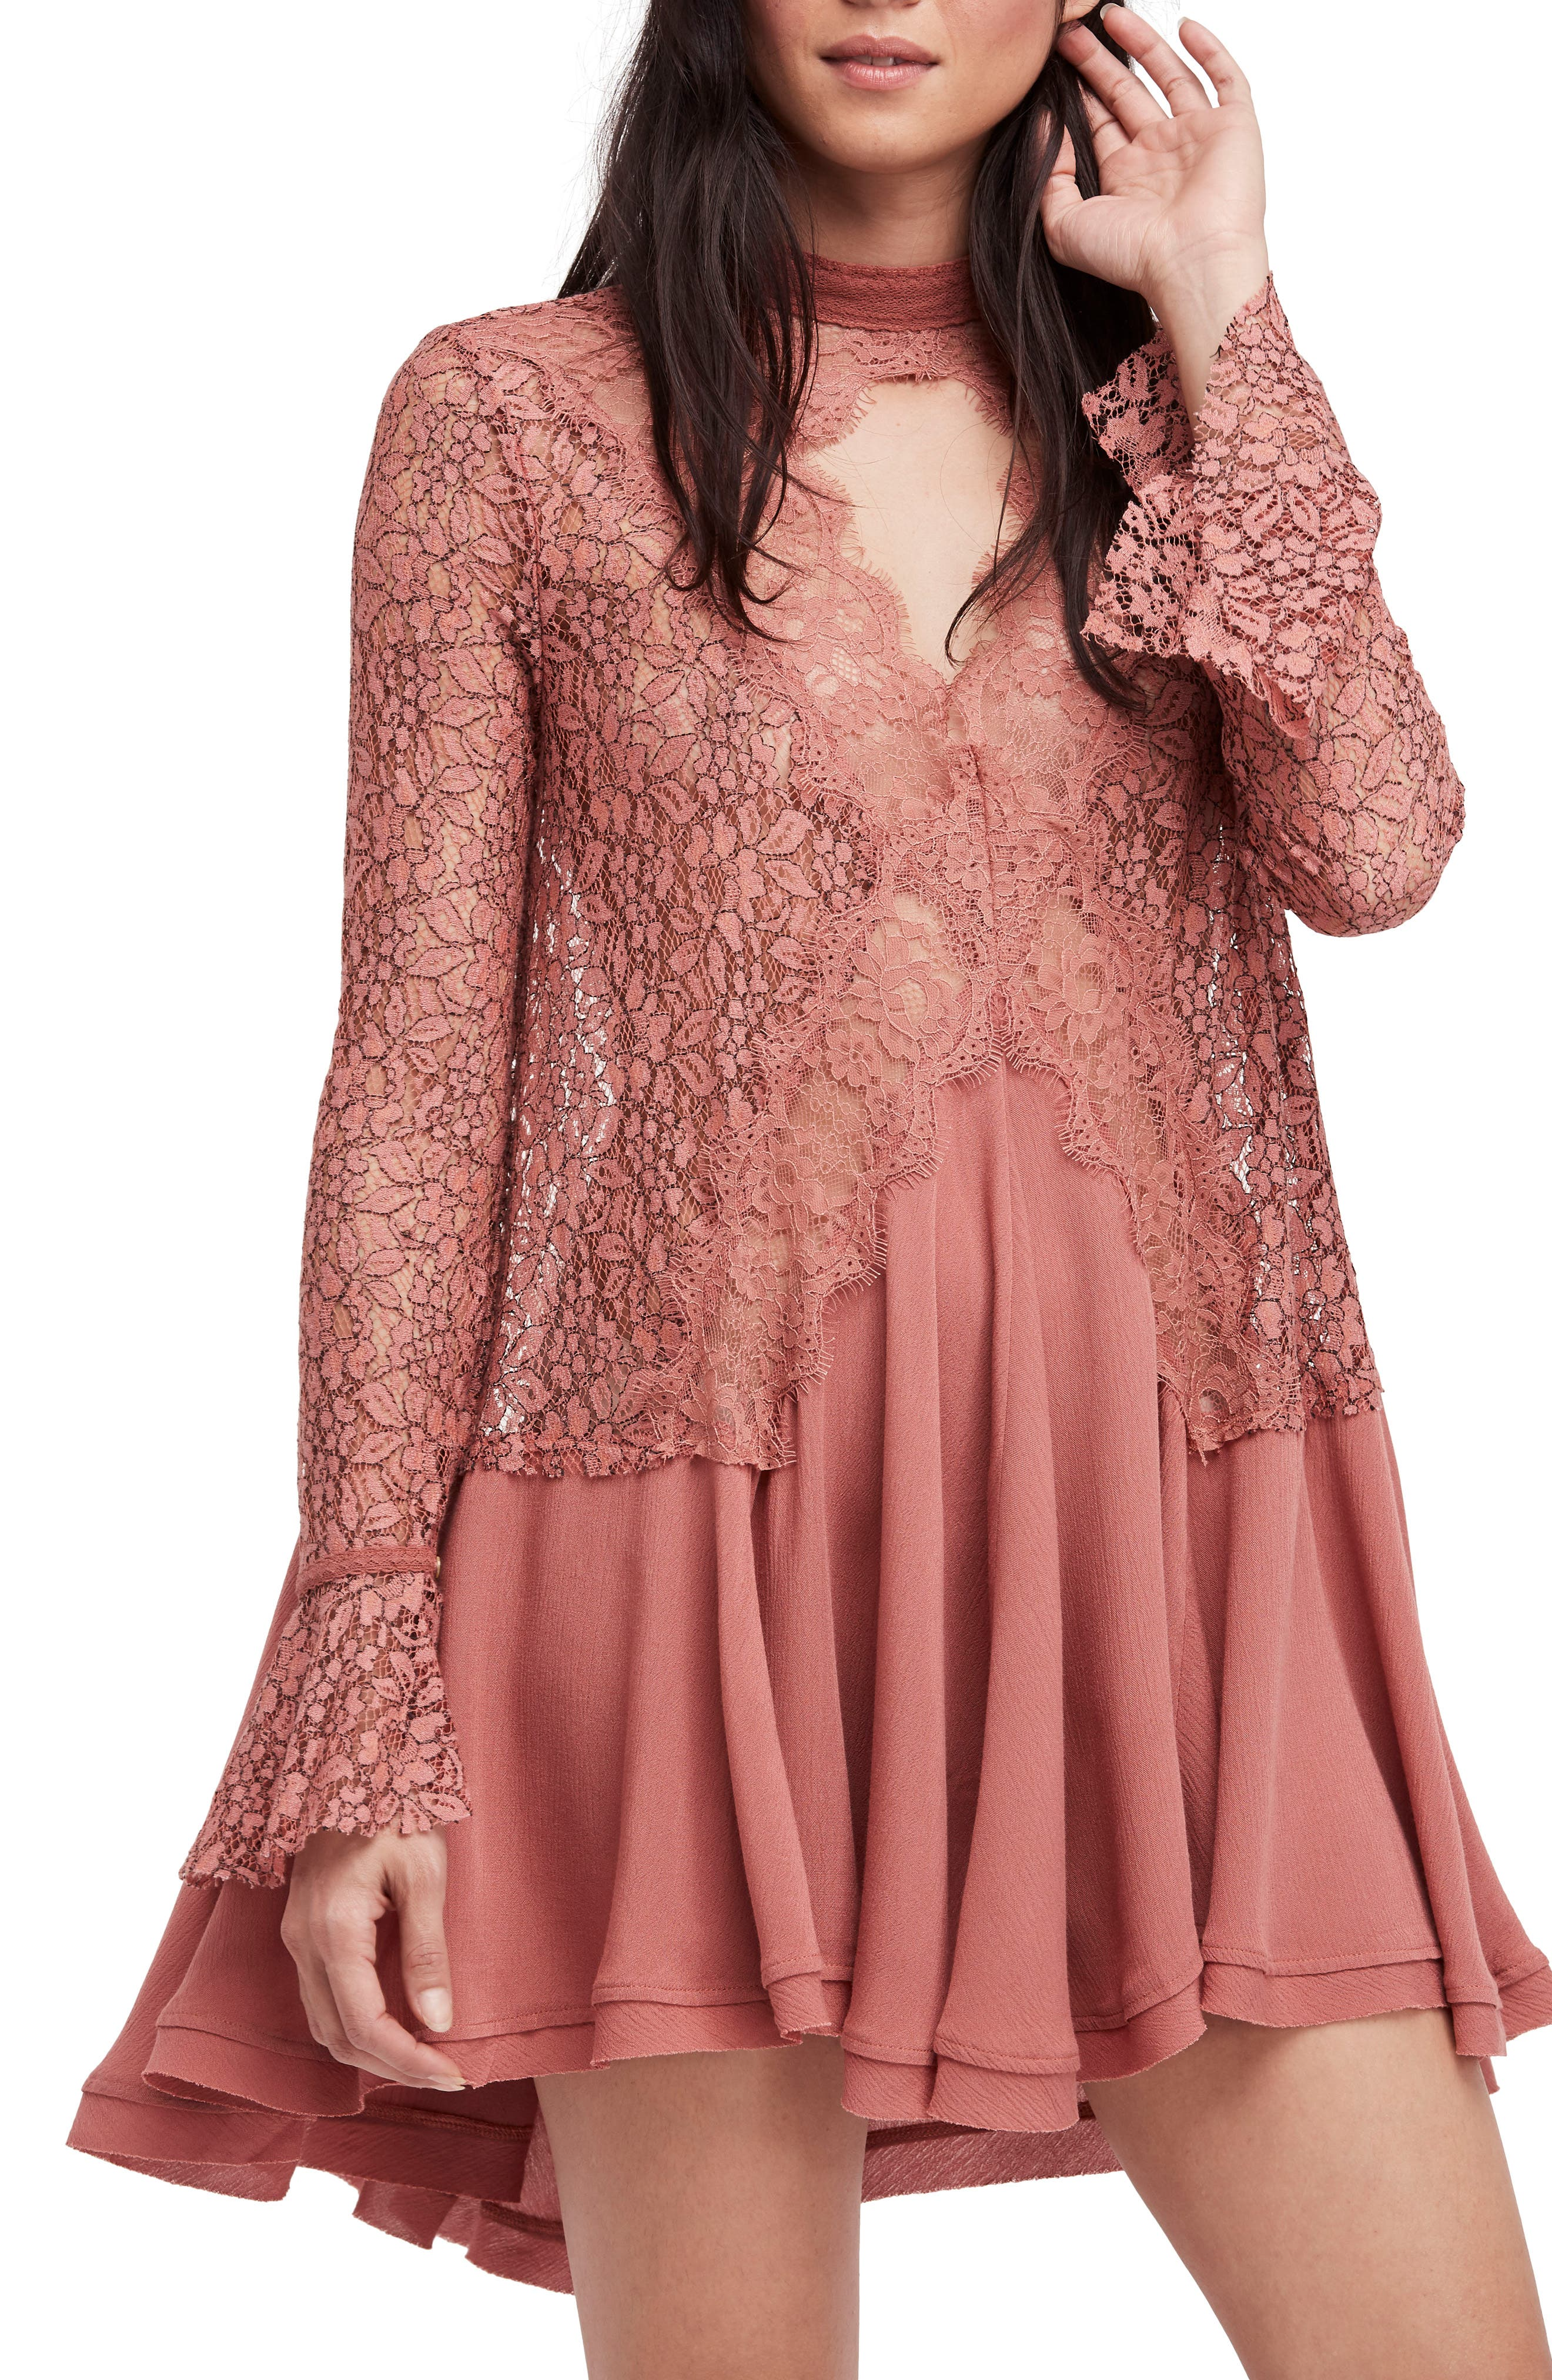 FREE PEOPLE New Tell Tale Lace Minidress, Main, color, 605